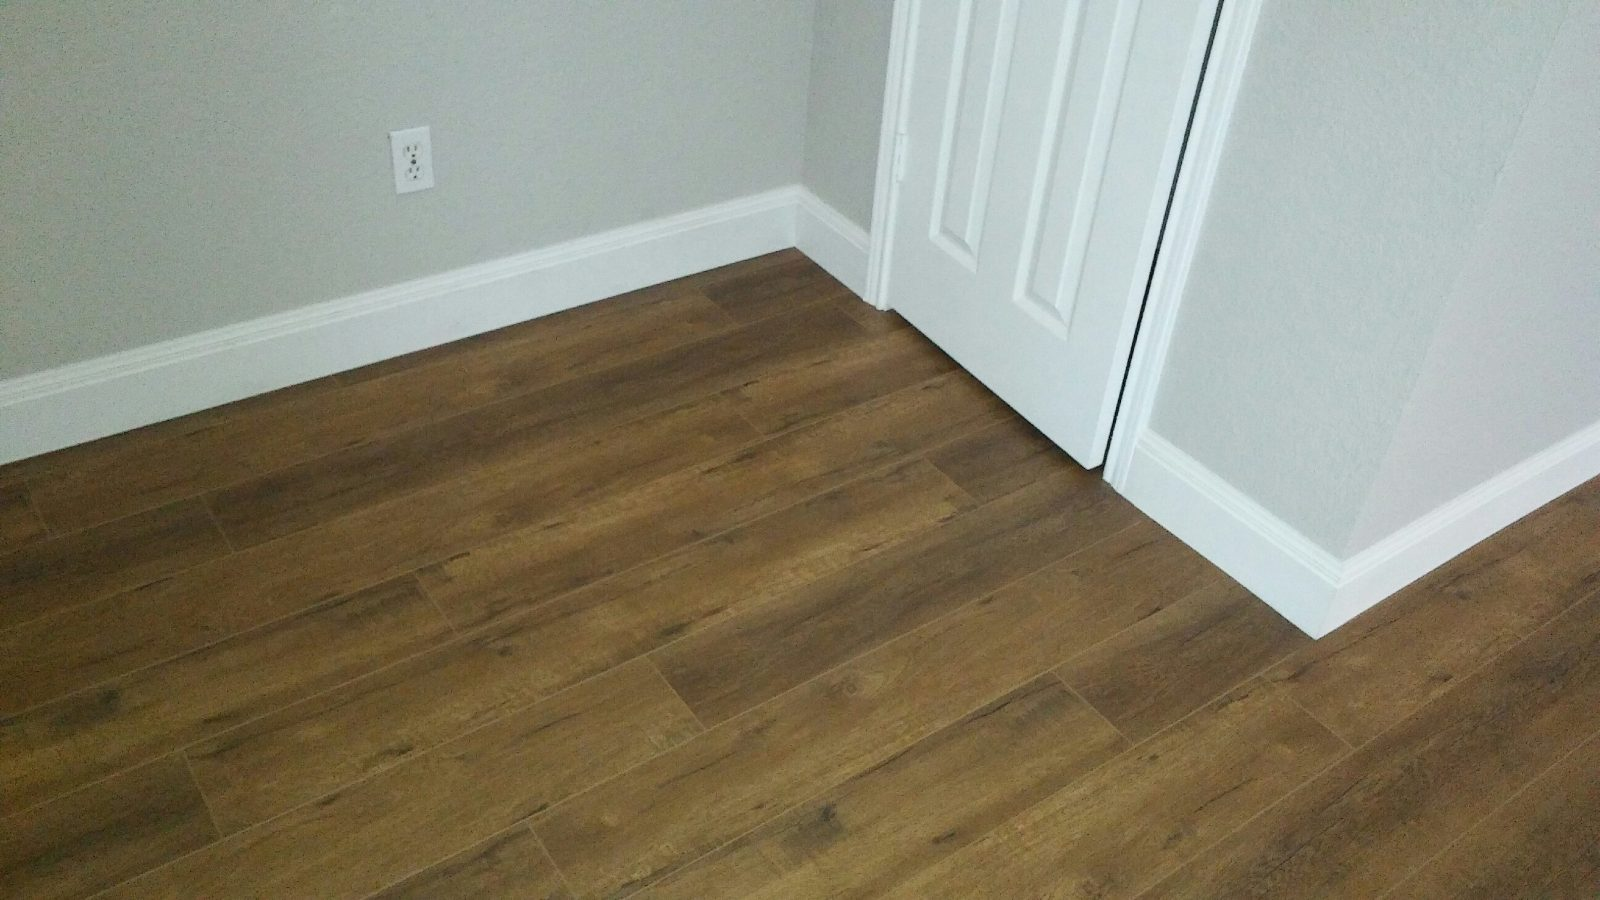 New laminate floors baseboards and paint ft worth tx gc in this house we did quite a bit of remodeling granite countertops laminate floors throughout tile in the kitchen and bathrooms interior and exterior dailygadgetfo Images